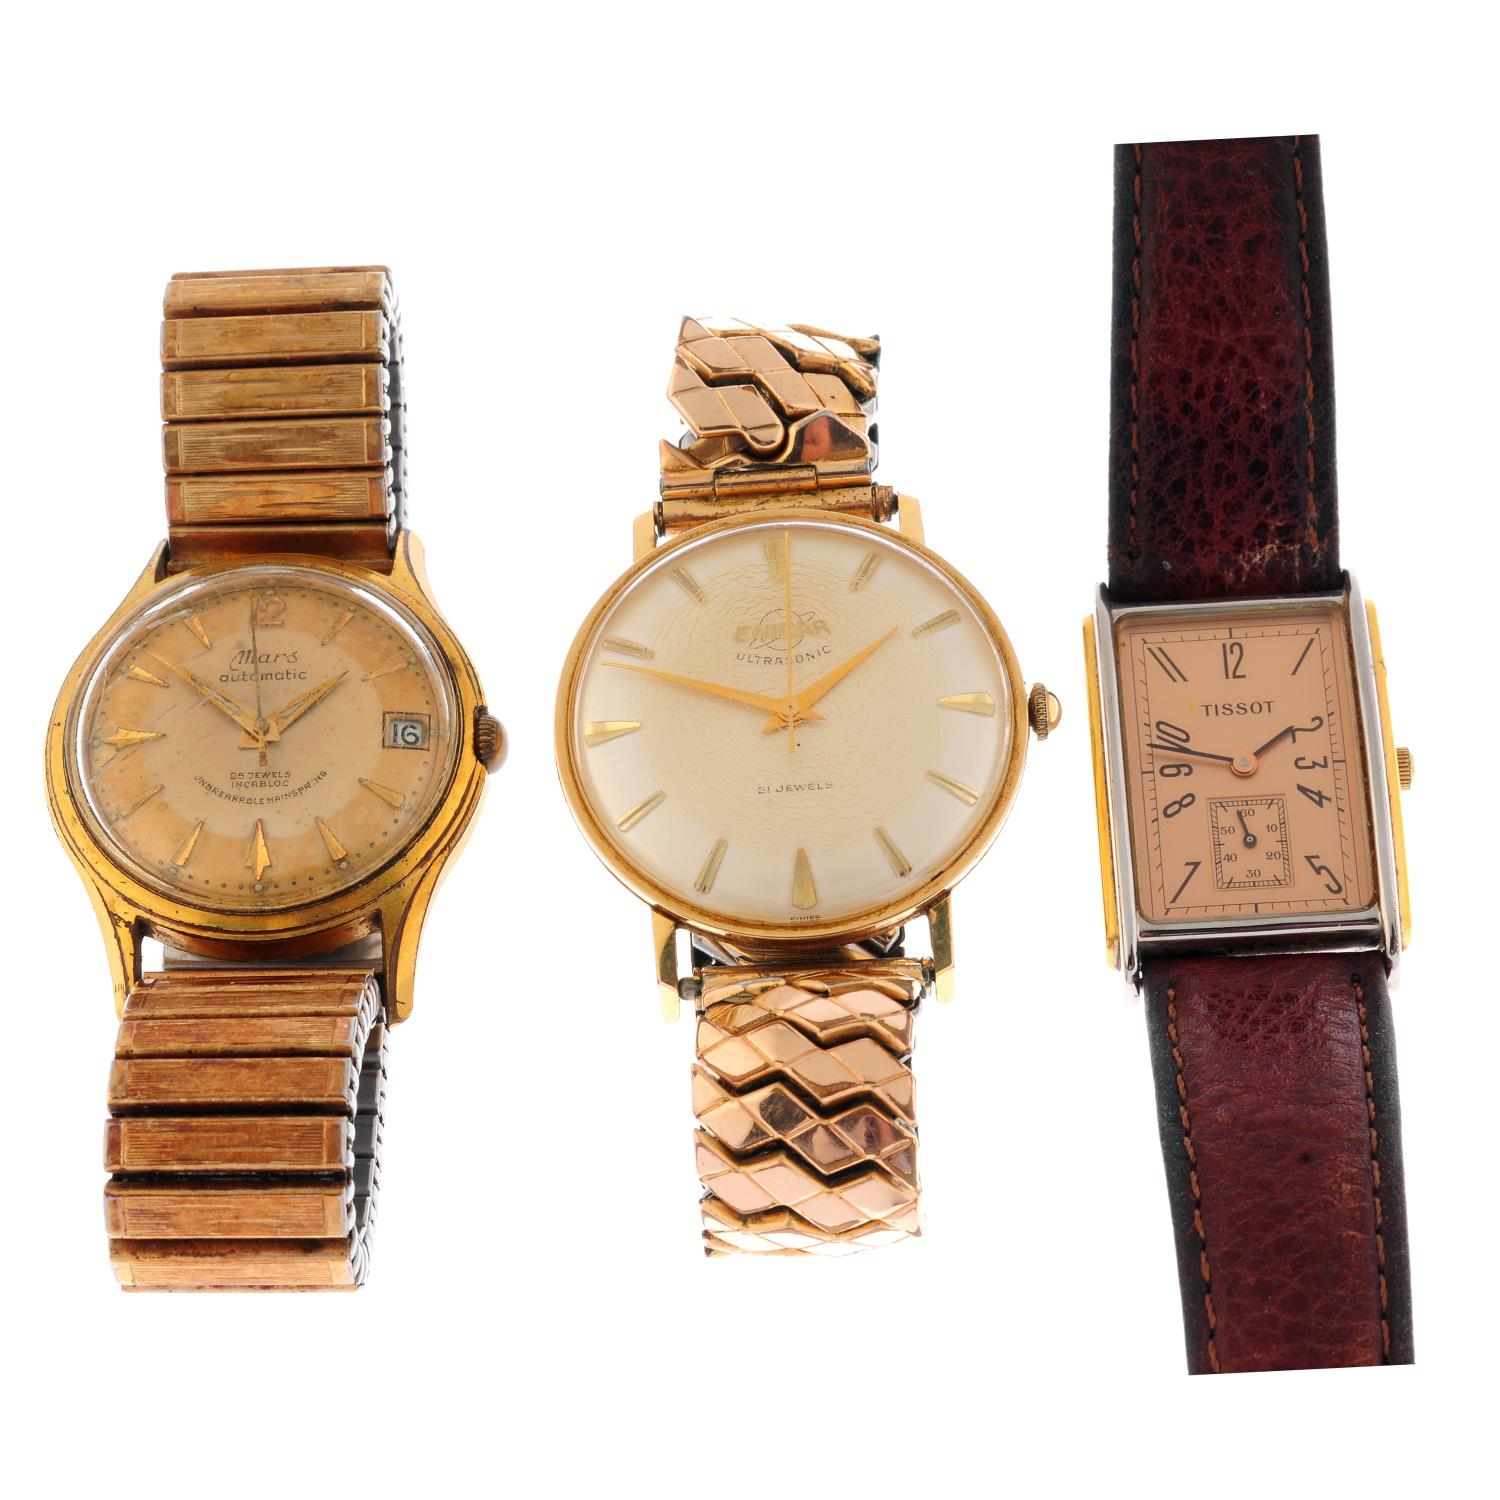 A group of five wrist watches, to include an example by Enicar and Tissot.